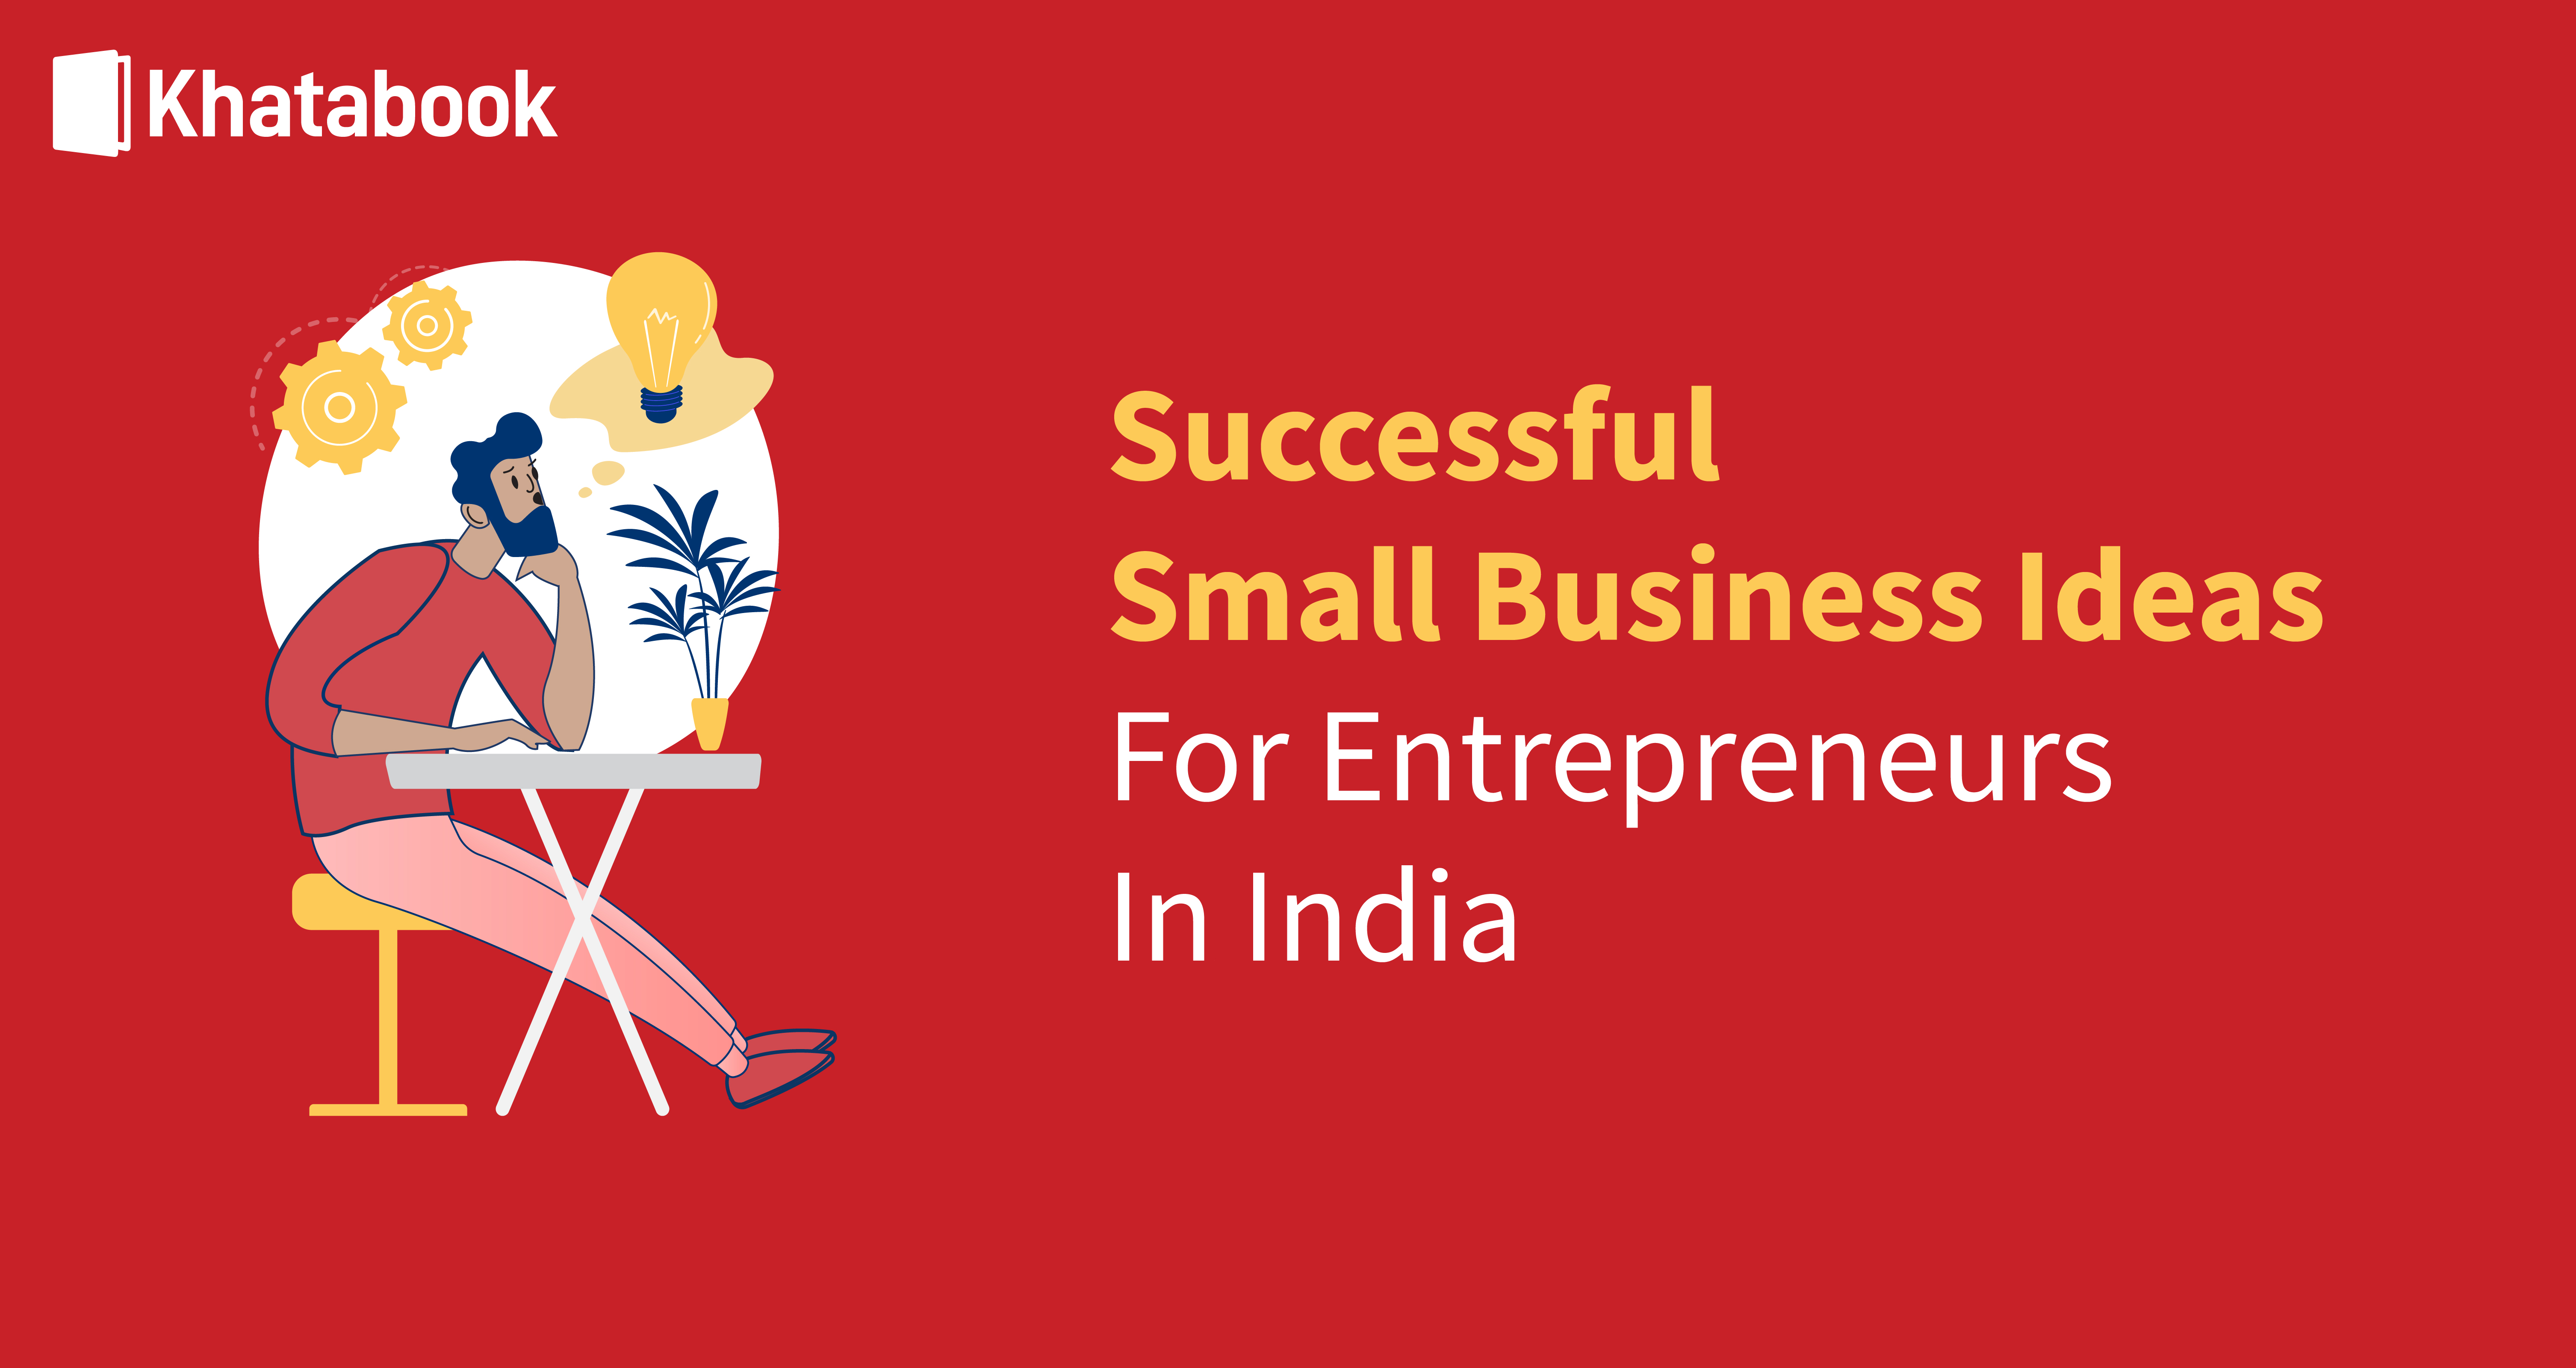 Successful Small Business Ideas for Indian Entrepreneurs